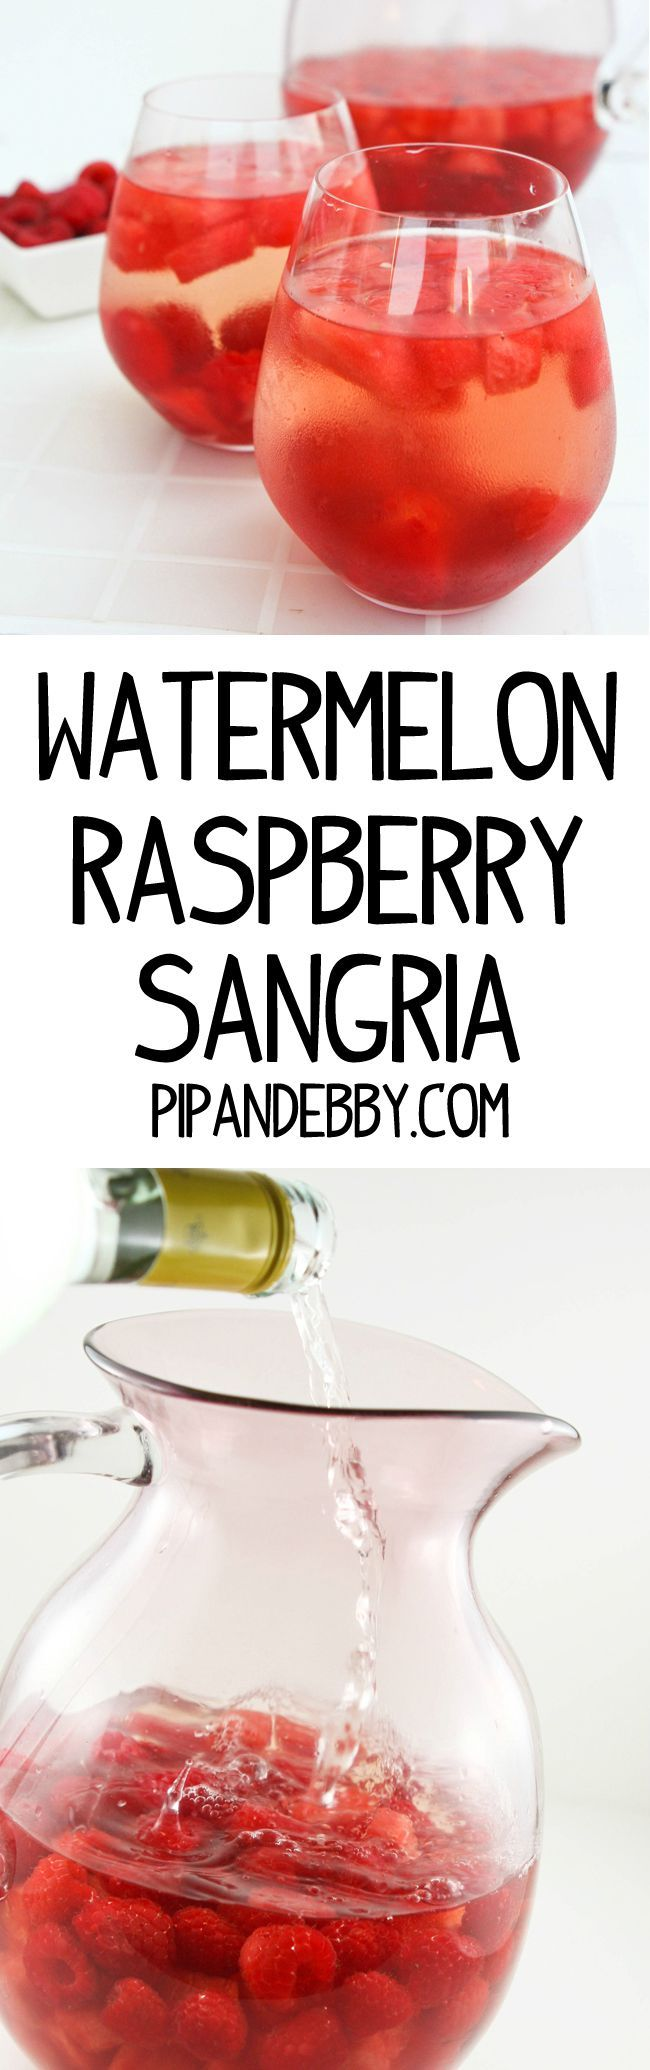 Watermelon Raspberry Sangria - Fruity, delicious and refreshing summer drink!